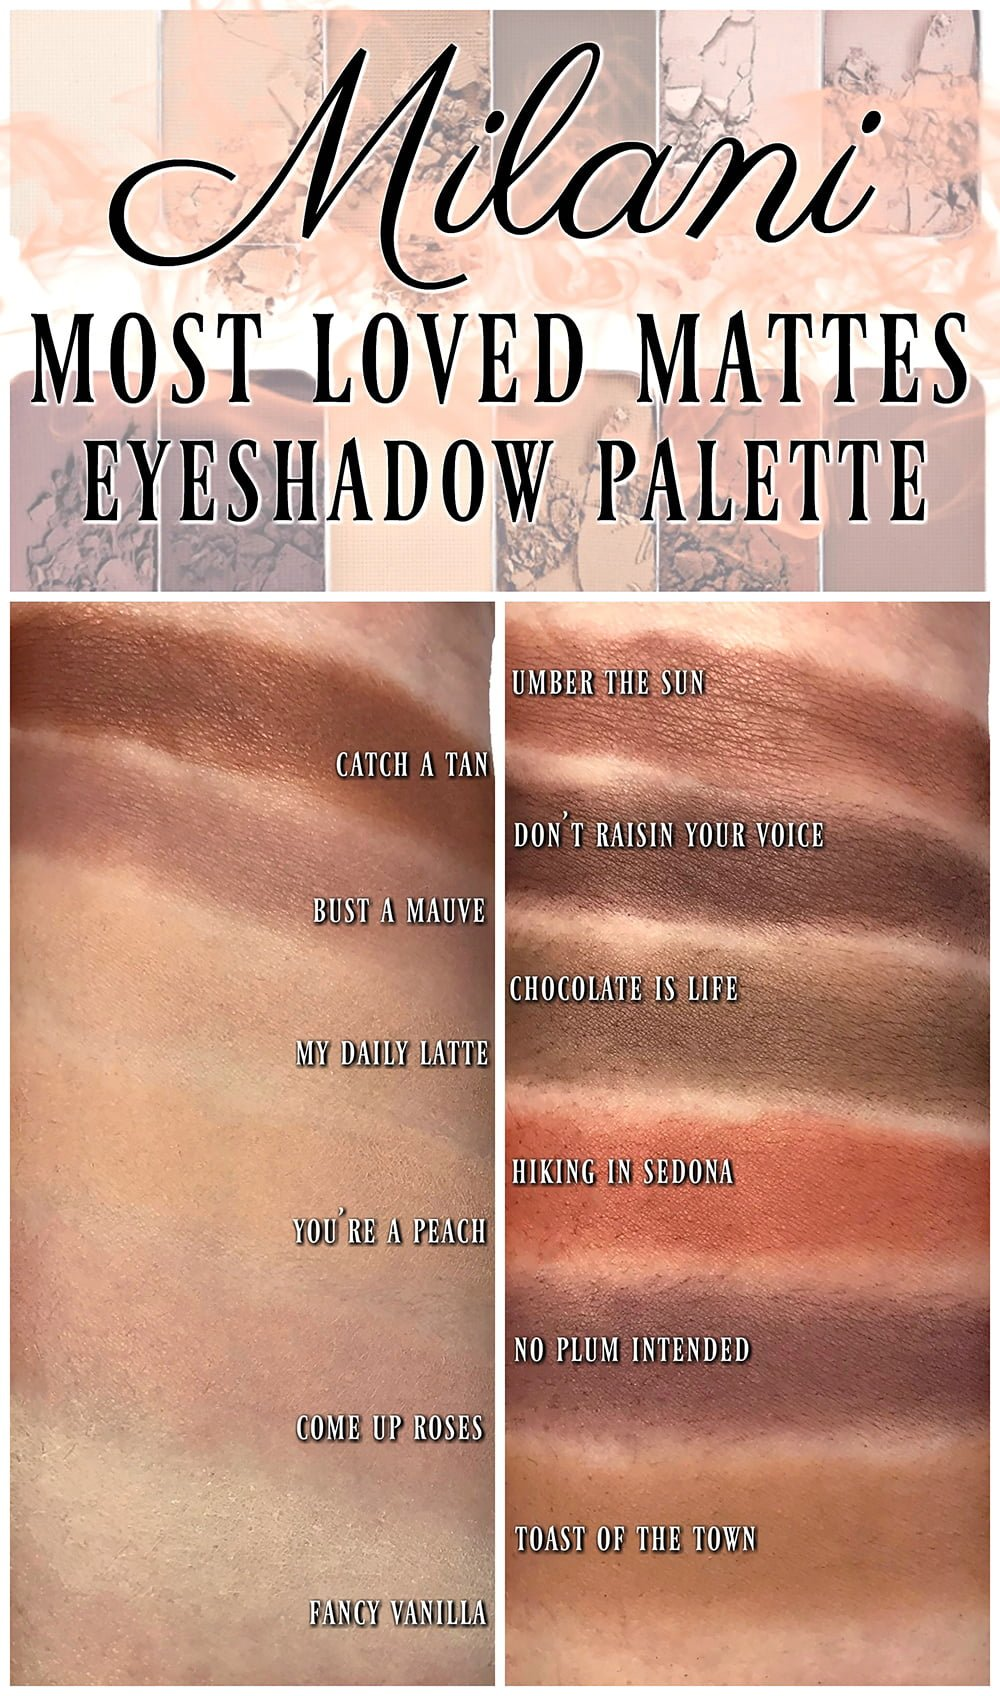 Most Loved Mattes Eyeshadow Palette by Milani #7